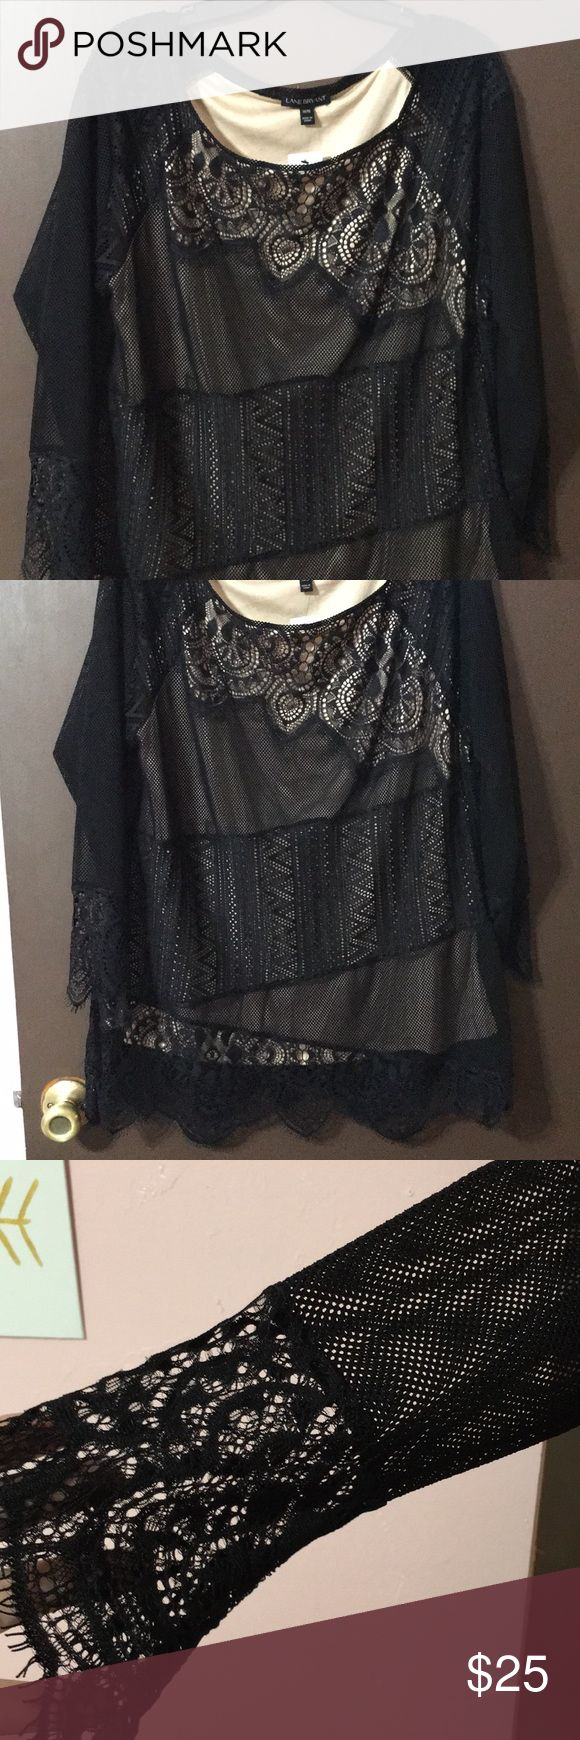 NWT Lane Bryant top NWT Lane Bryant black and cream lace top. Fully lined body and sheer lace sleeves. Size 14/16 Lane Bryant Tops